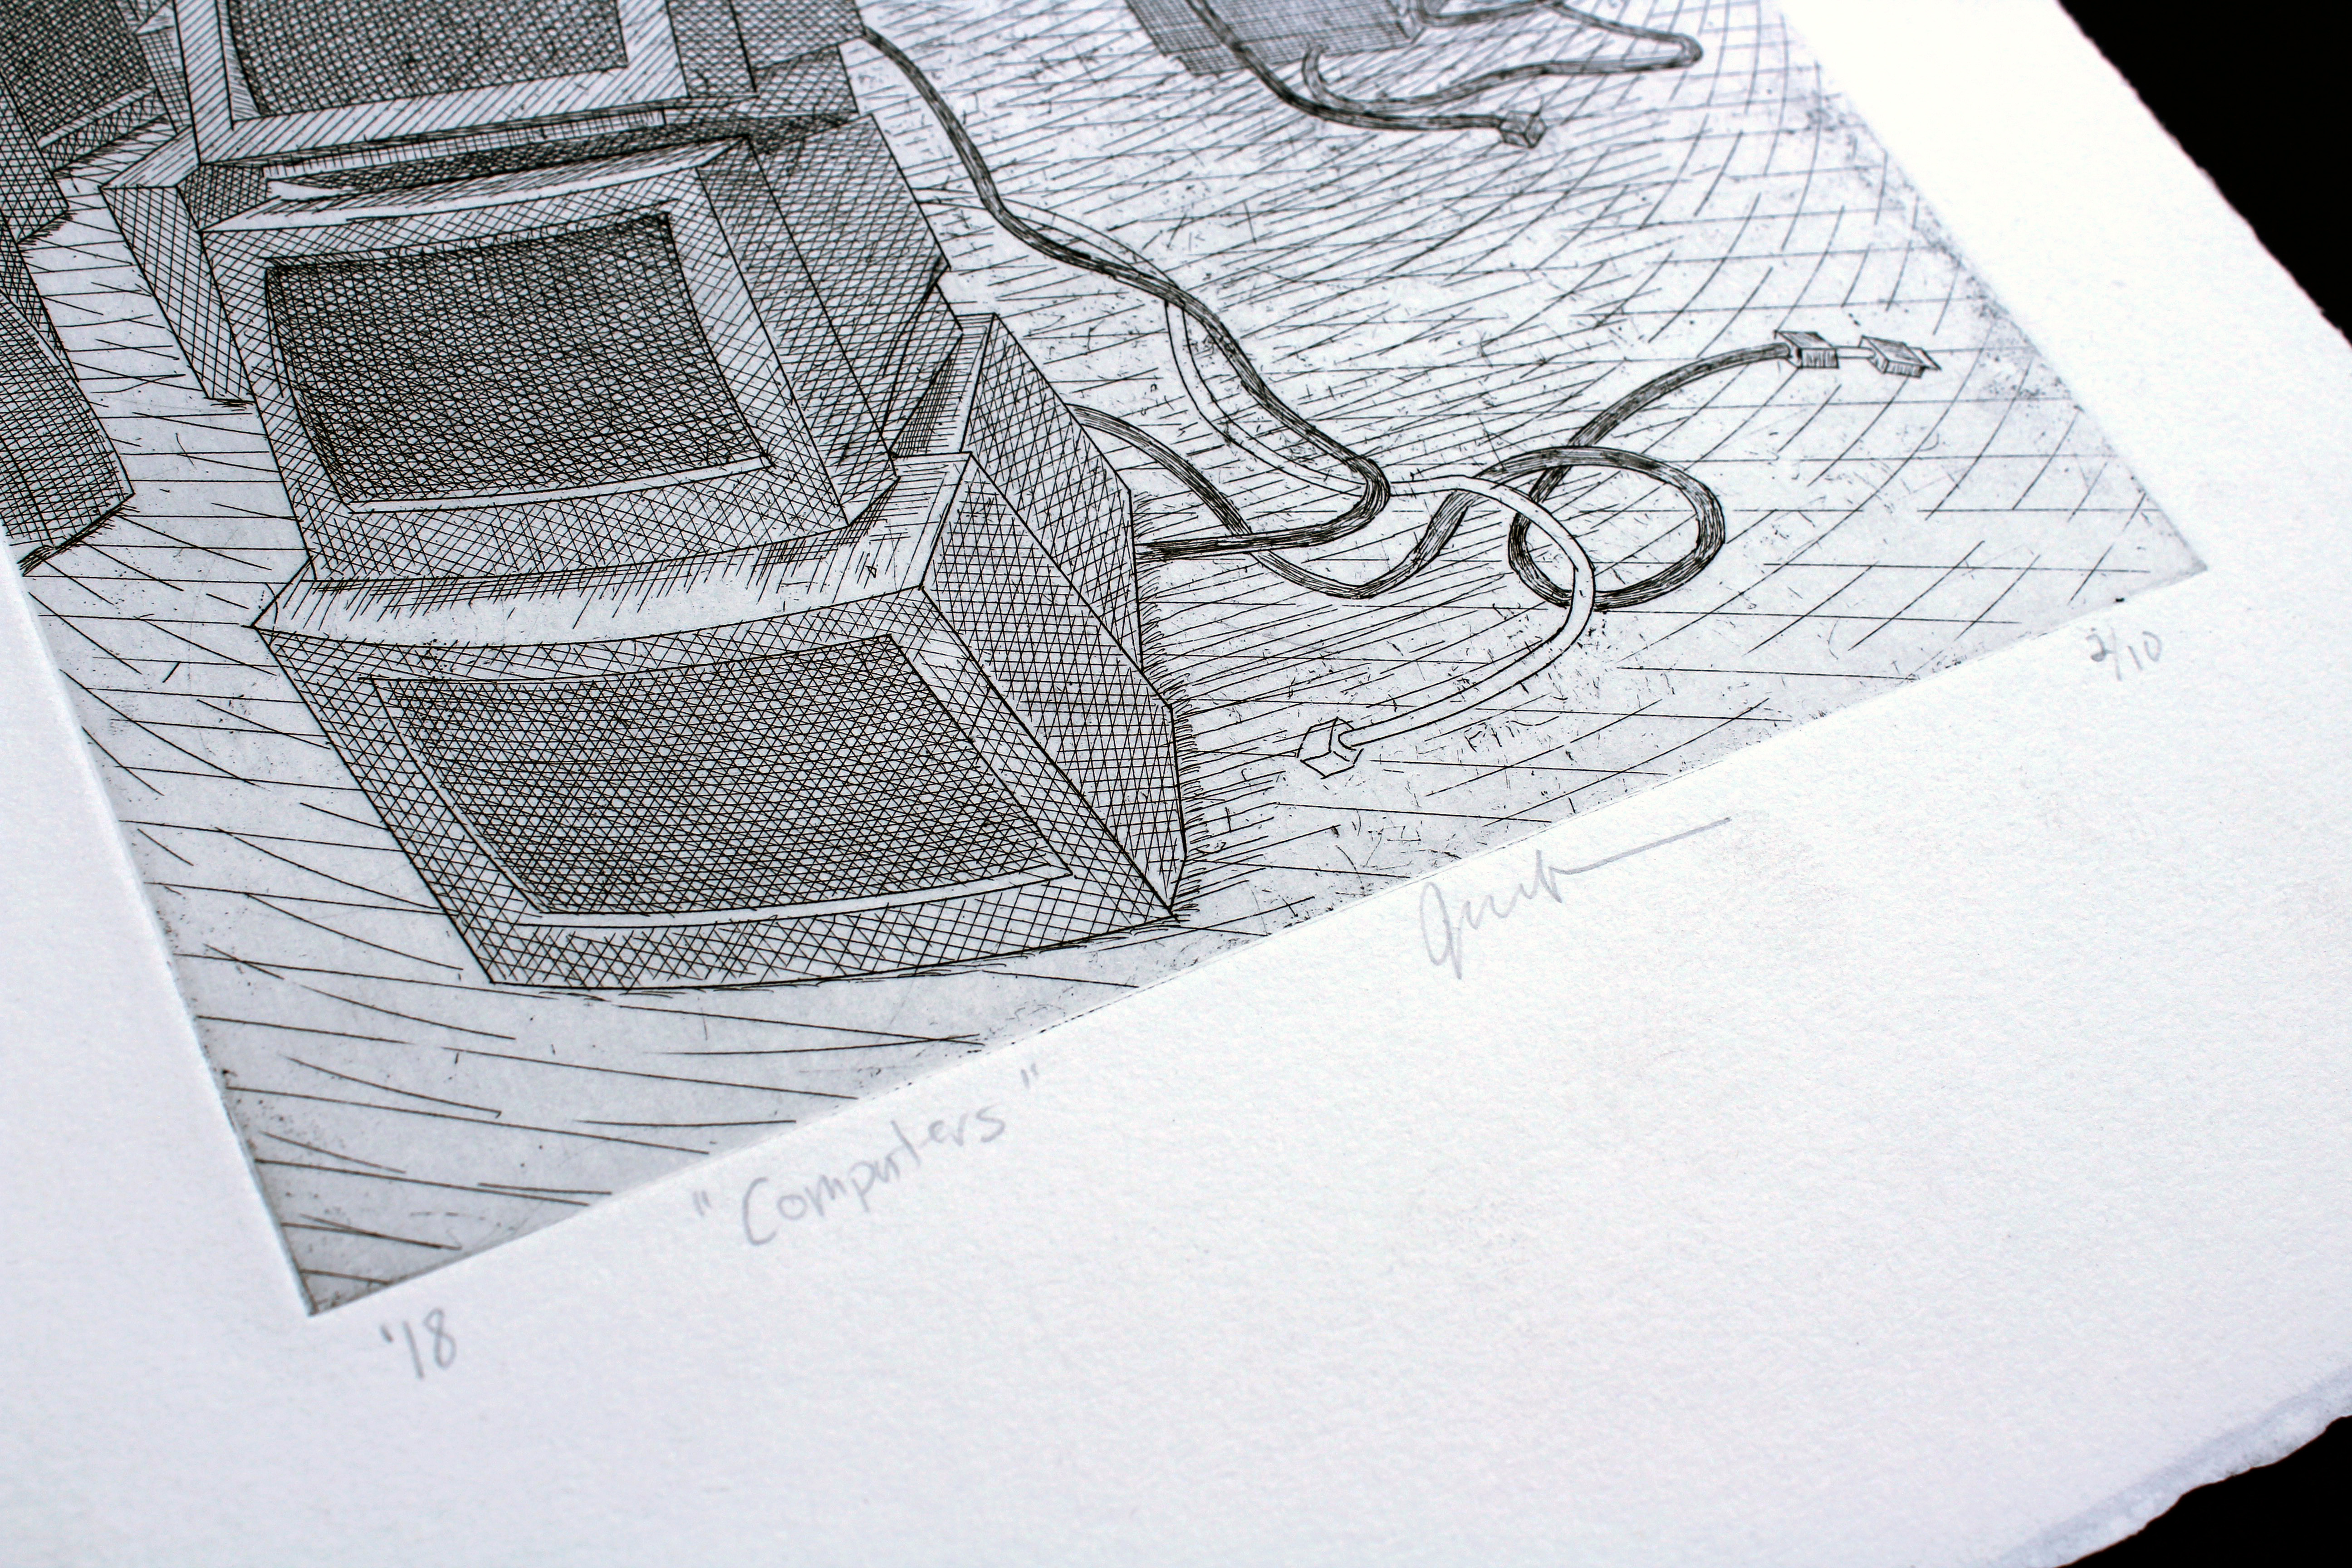 Computers 1 (detail 2)